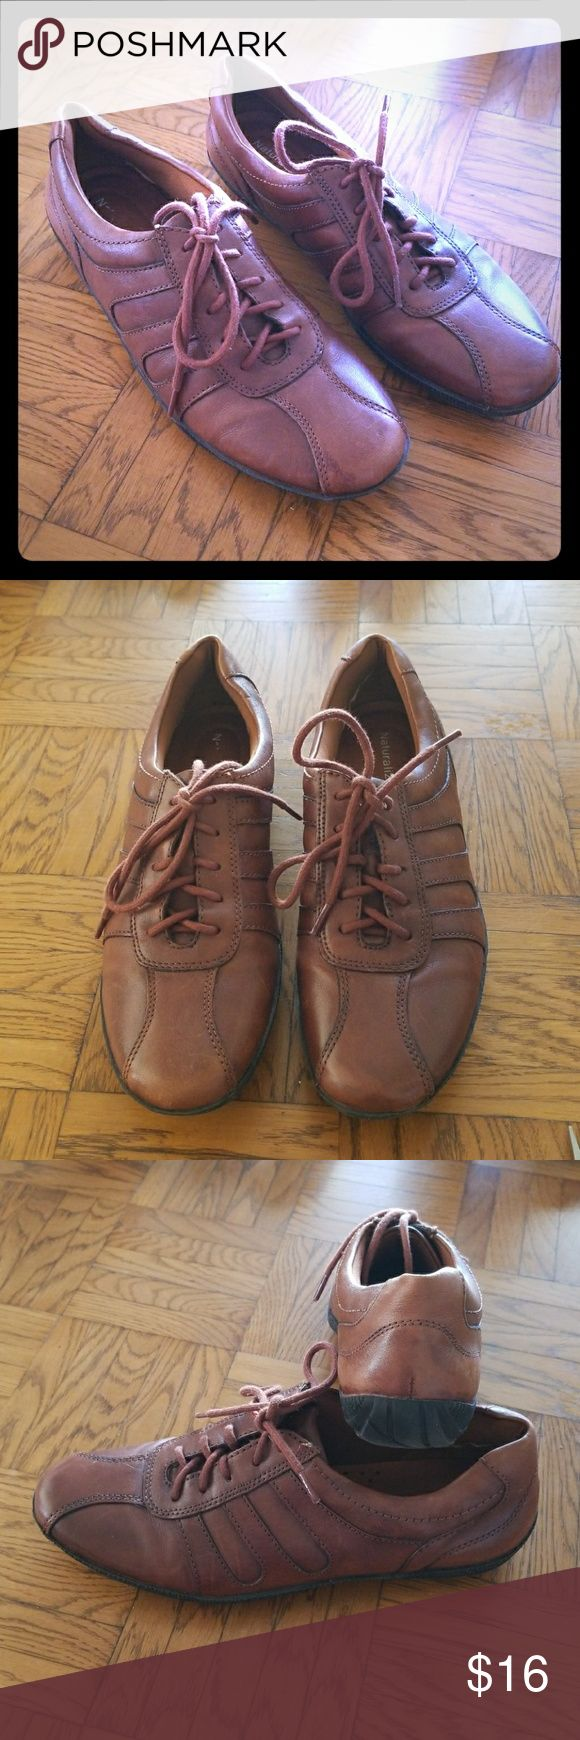 Naturalizer Brown Leather Shoes Naturalizer Brown Leather Shoes  * Size 7M * Addie collection * Rubber sole has some wear marks on side and bottom  * Inside soles are worn with Naturalizer name faded on right shoe Naturalizer Shoes Sneakers